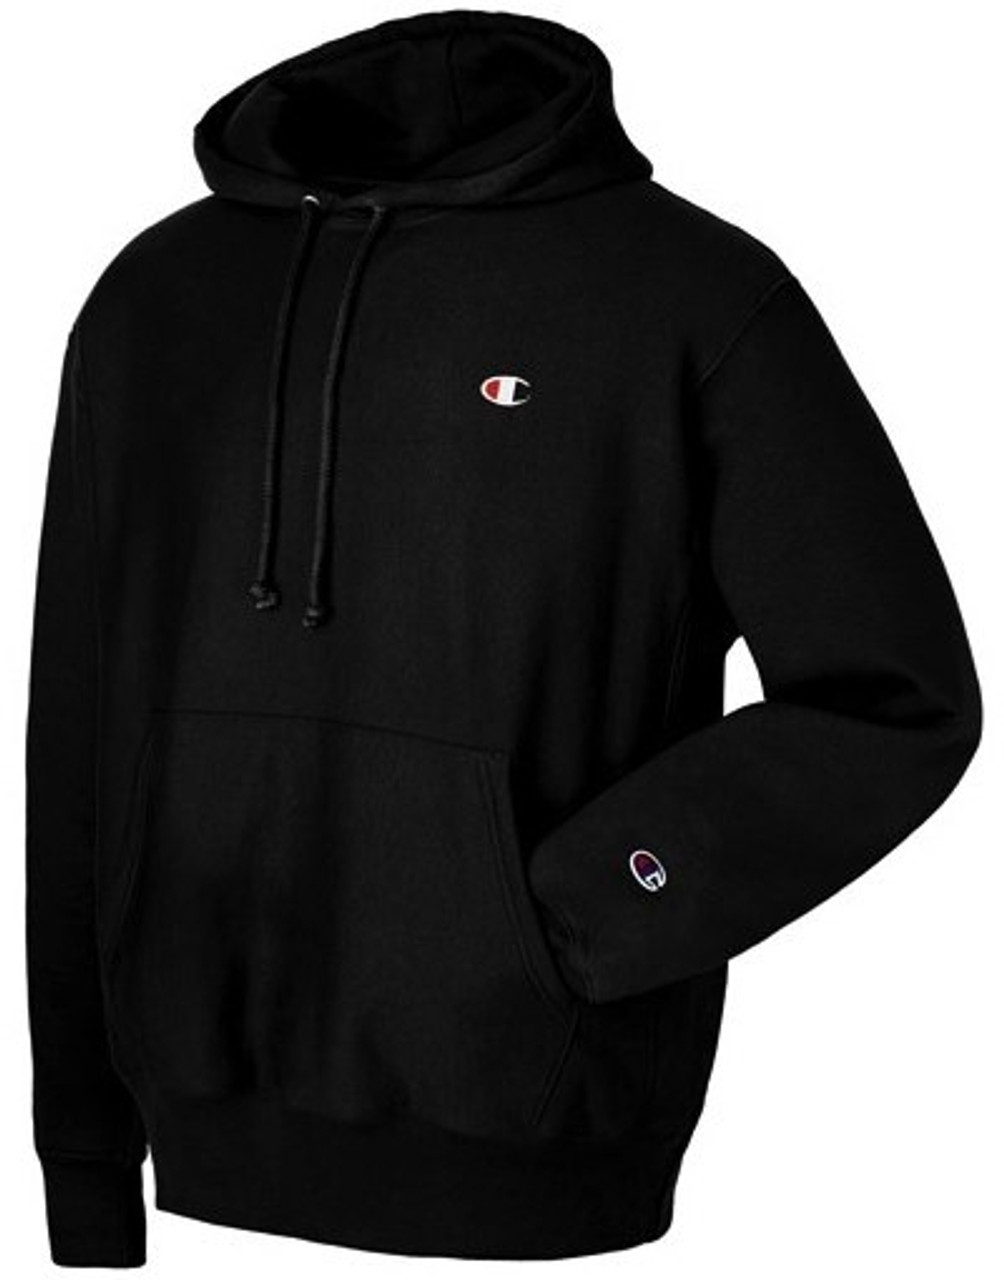 cb6b5d61 Champion Reverse Weave Black Hoodie Pullover Jerse - Authentic ...